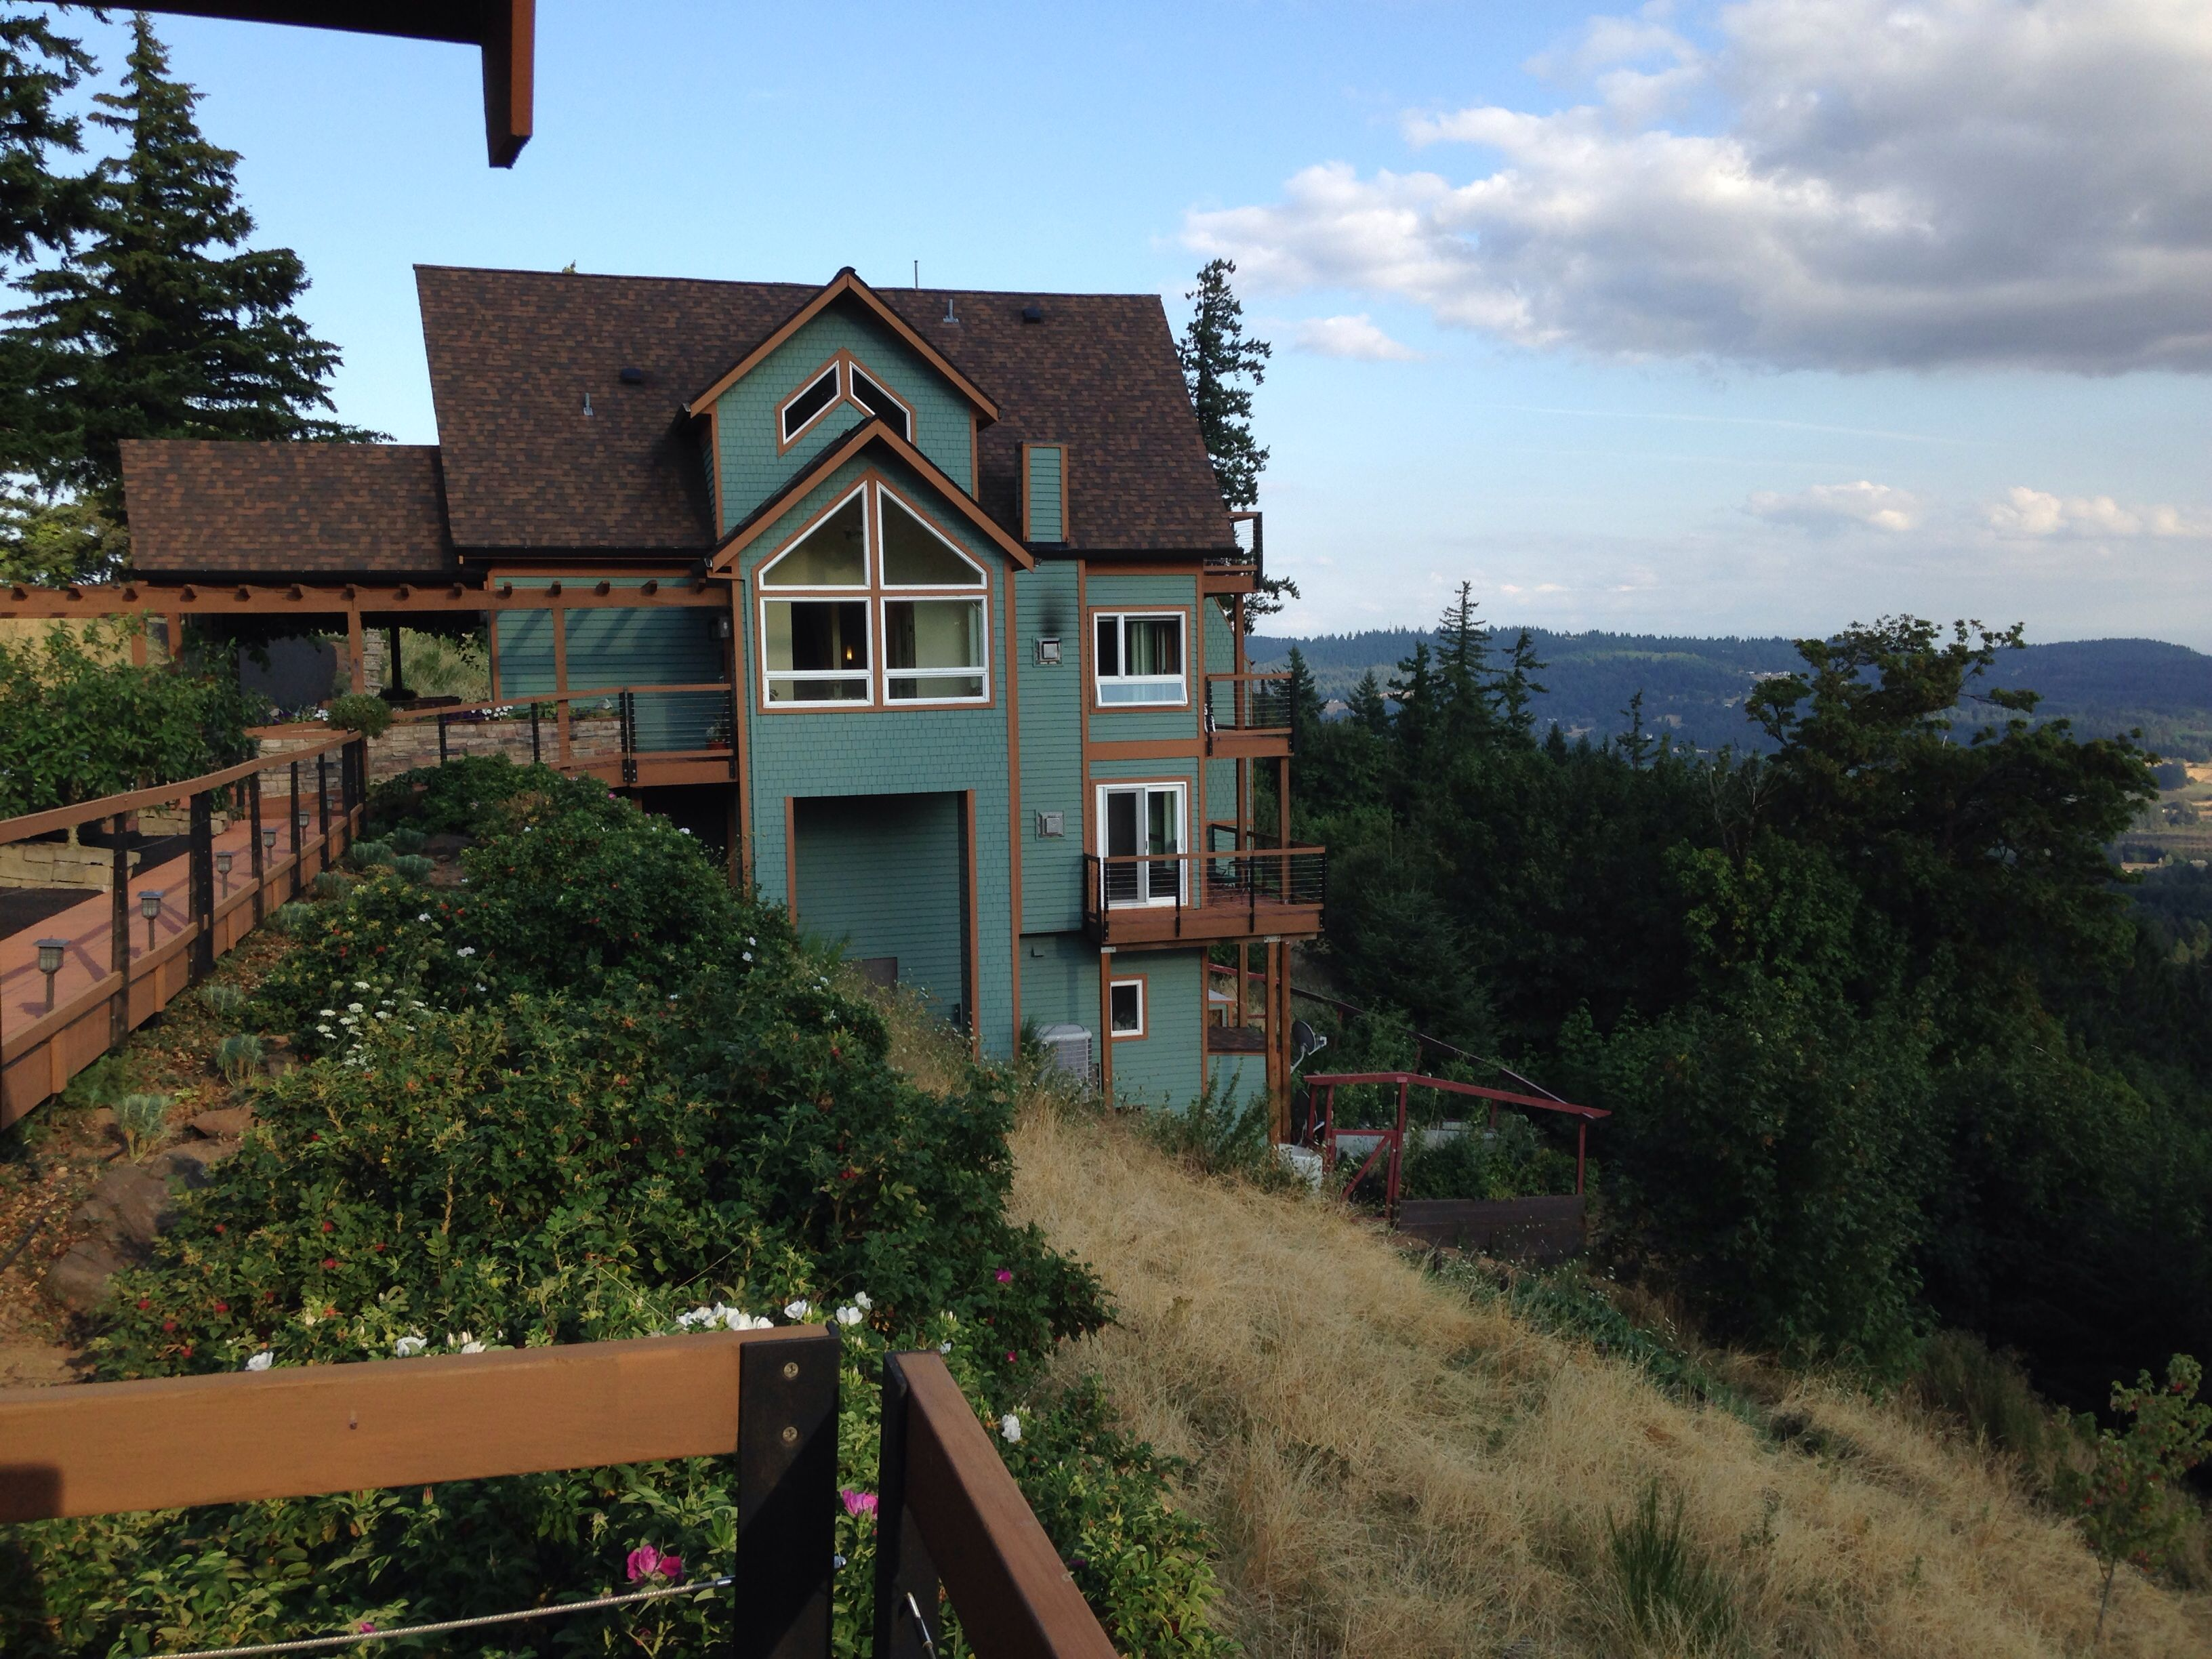 chehalem ridge bed and breakfast in newberg, or | awesome places i